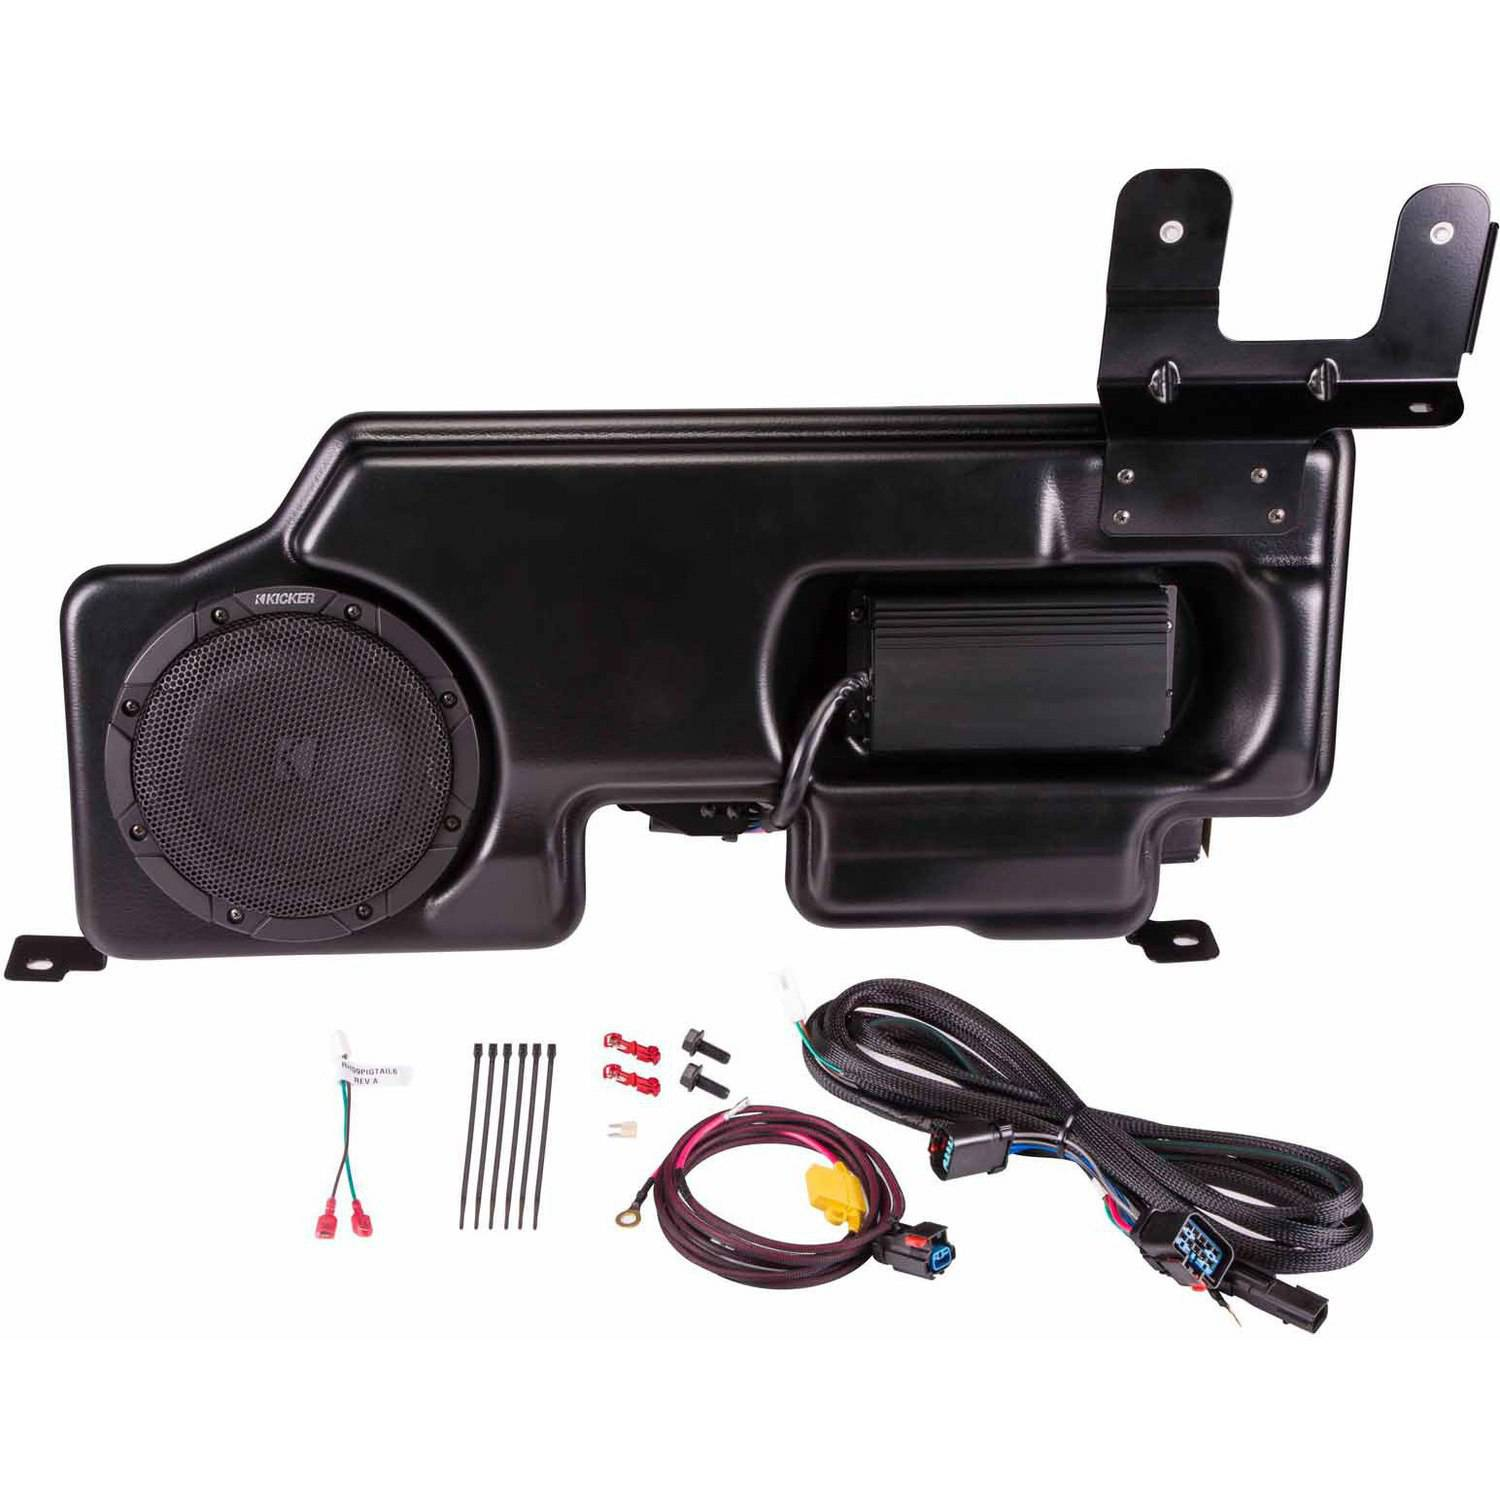 KICKER SubStage Powered Subwoofer Upgrade Kit for 2015 Ford F-150 Cab and Super Crew